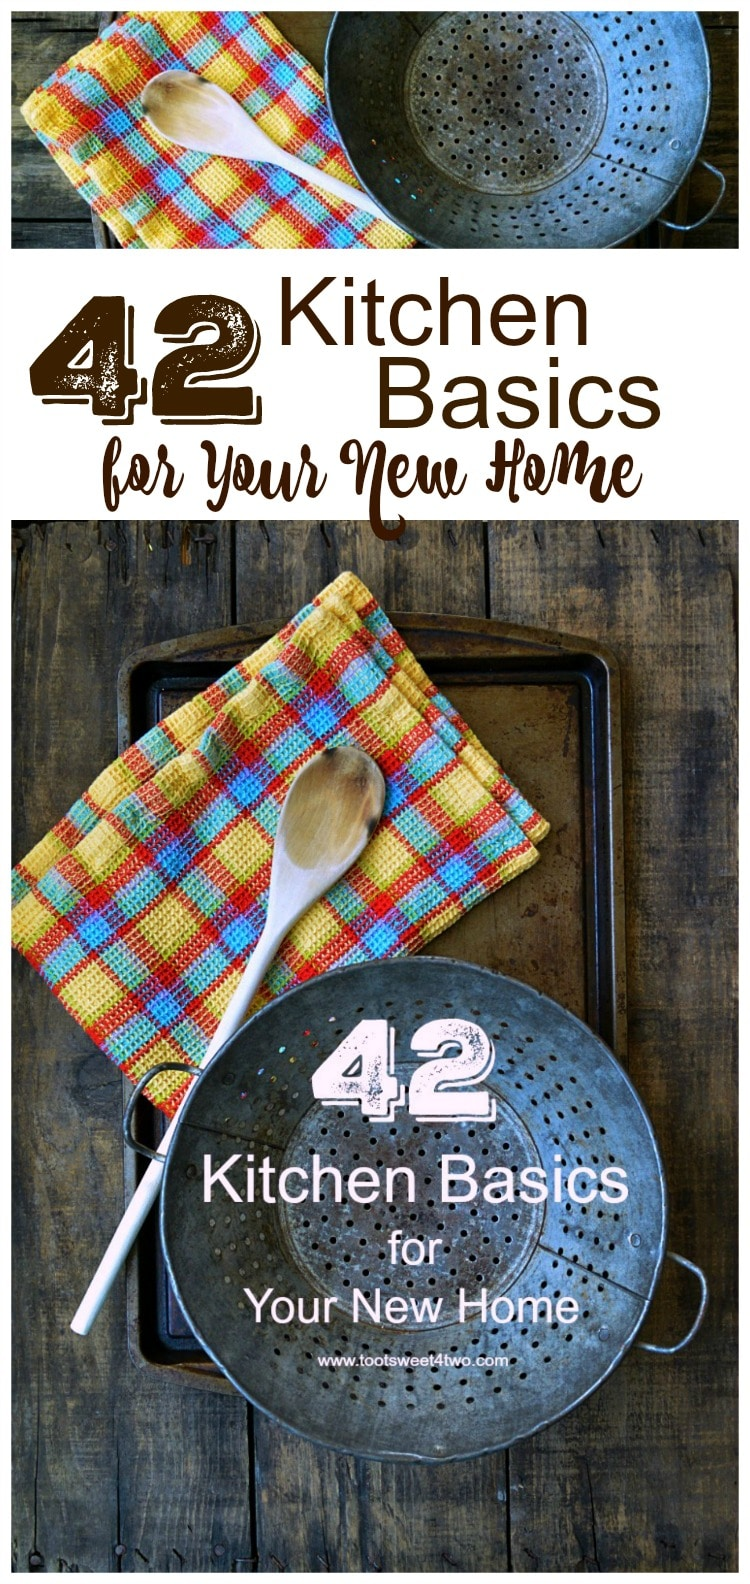 Do you know someone just getting their first place? Starting out, starting fresh, starting over? A cooking enthusiast, bride-to-be, newlywed, recent graduate or someone just getting their first apartment or home? 42 Kitchen Basics for Your New Home including a FREE printable checklist will get you started. | www.tootsweet4two.com